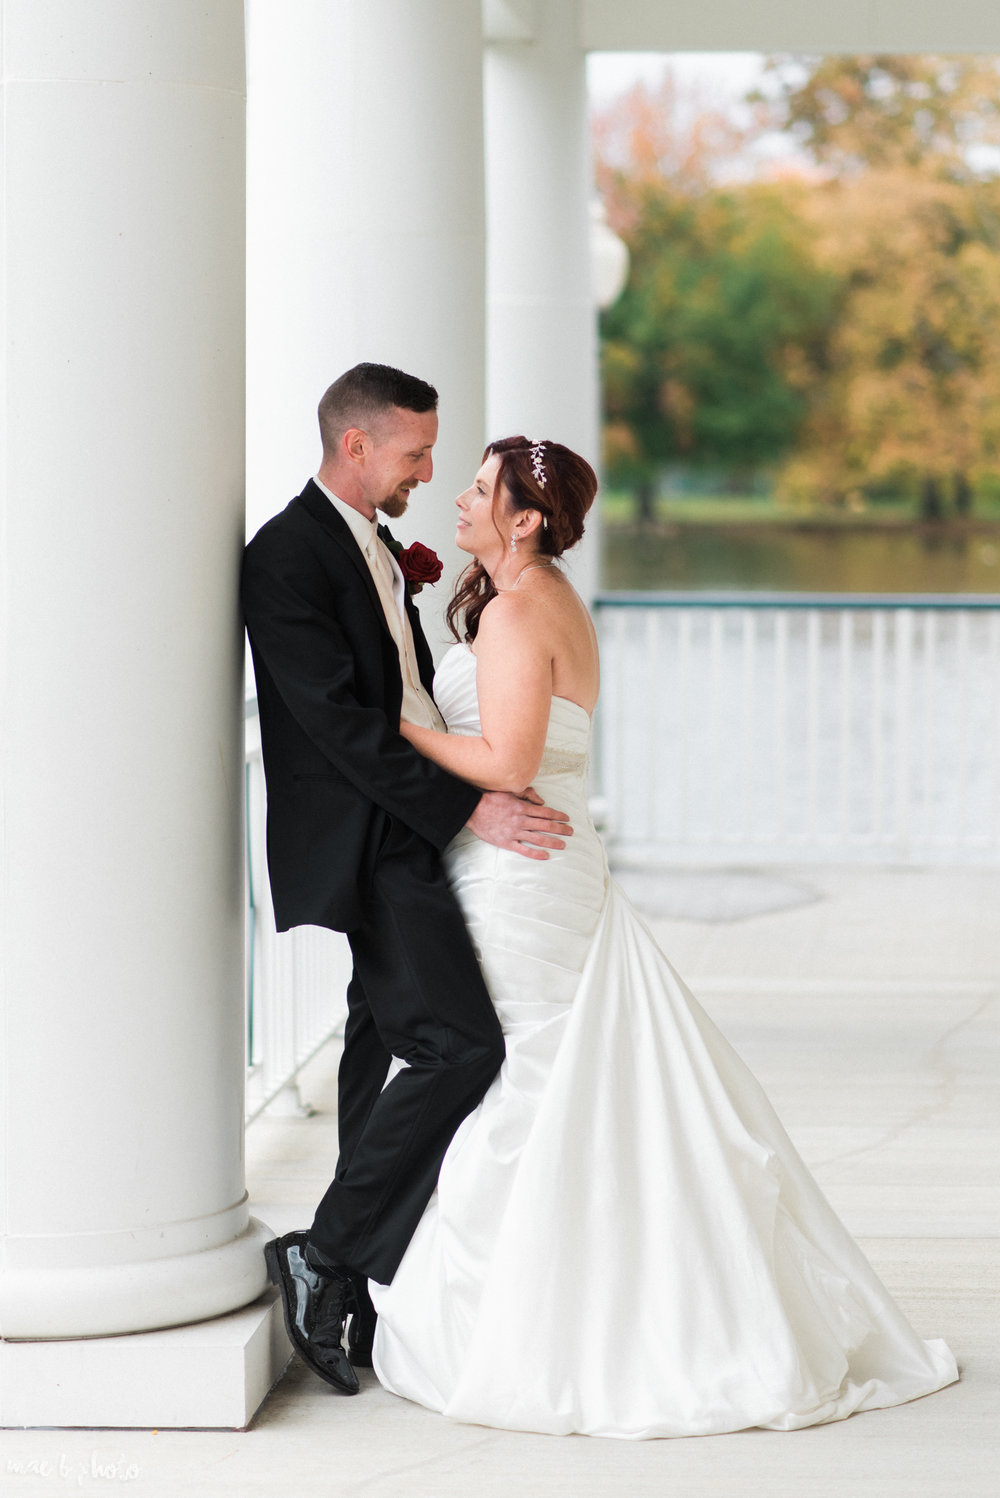 Tracey & Aaron's Personal Fall Wedding at Tiffany's Banquet Center in Brookfield, Ohio Photographed by Mae B Photo-3.jpg